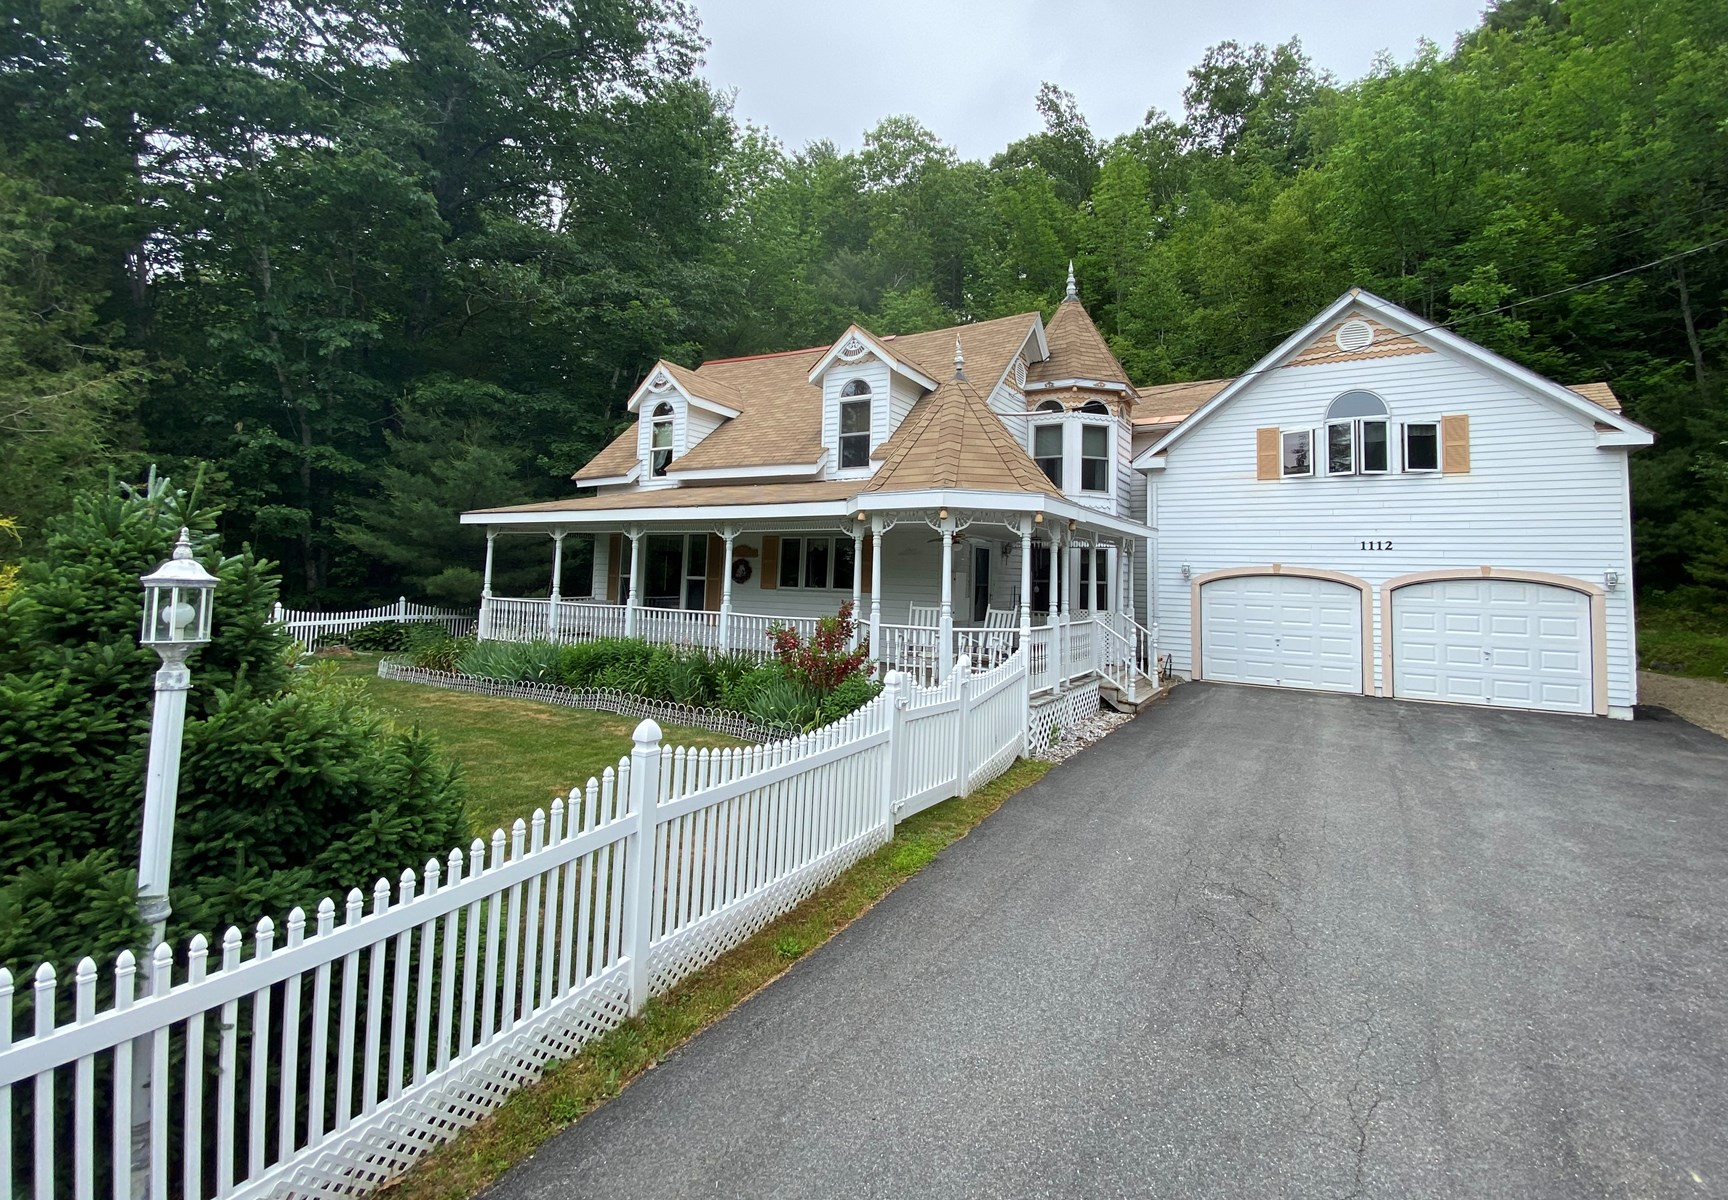 Victorian Home for Sale in Orland, ME